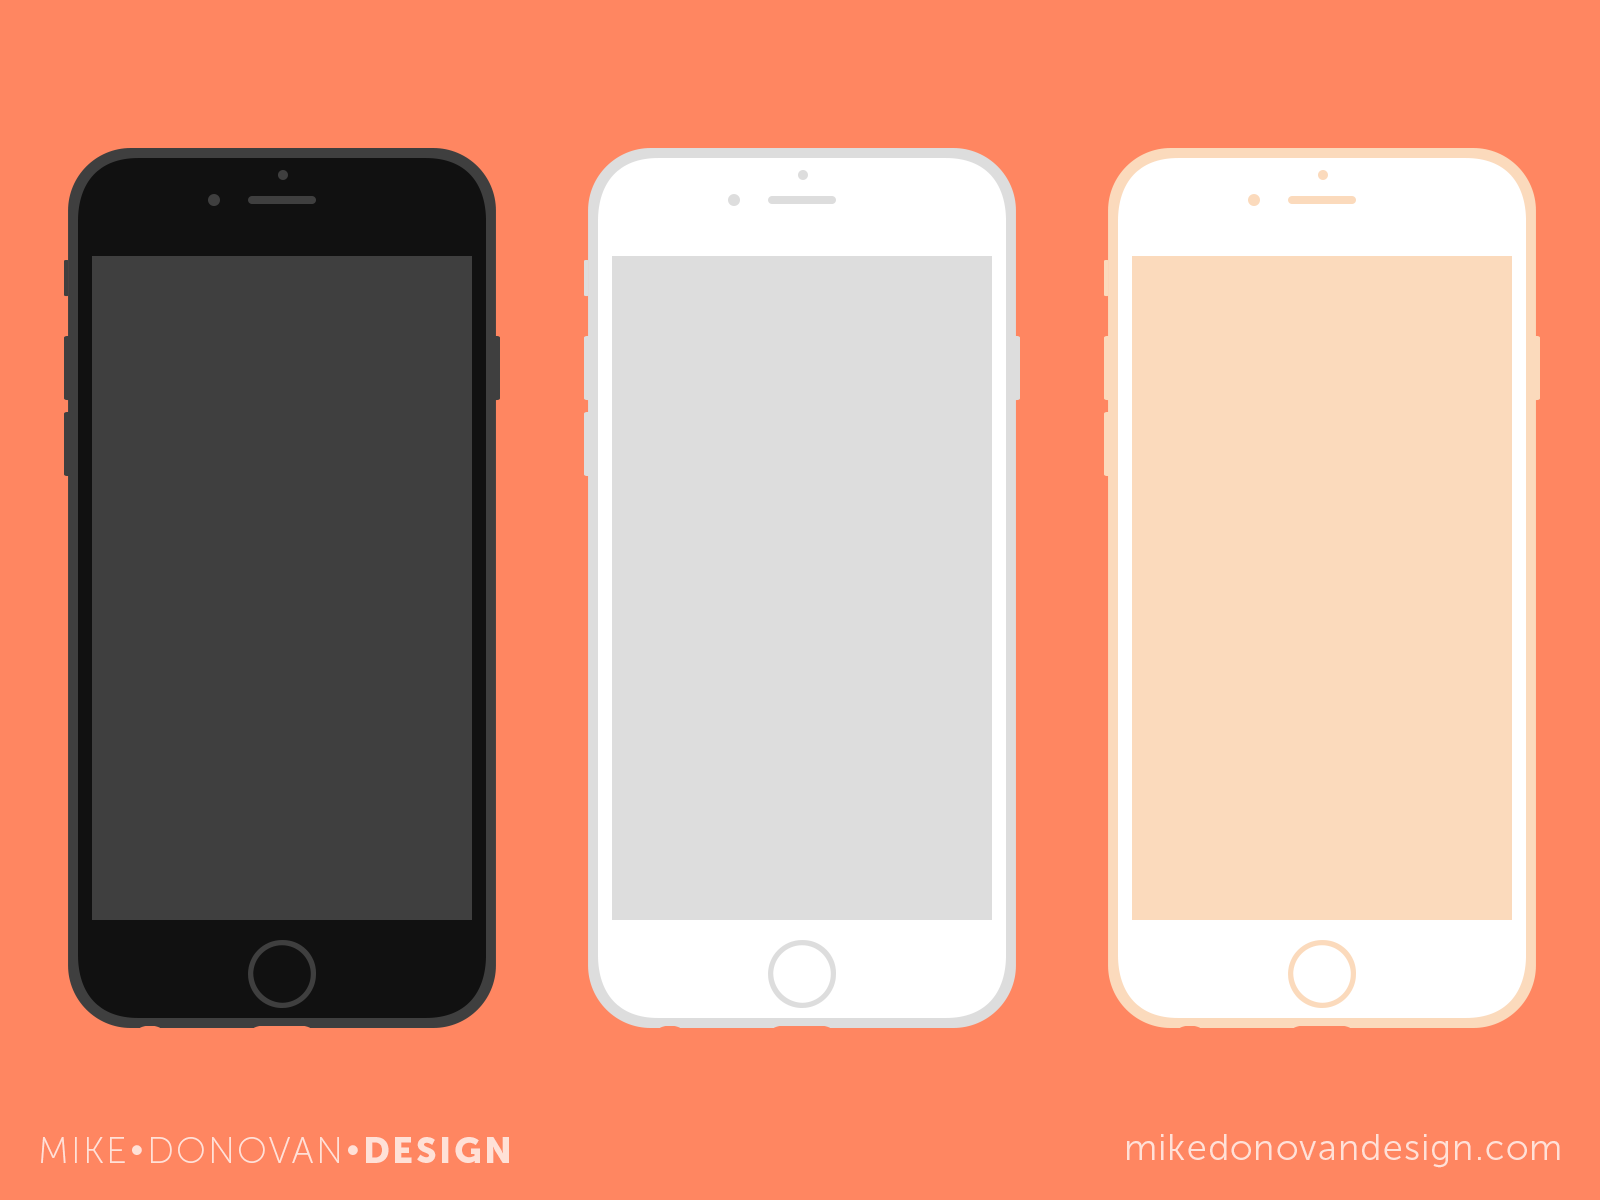 Mike Donovan Design | iPhone 6 Flat Vector Mockups